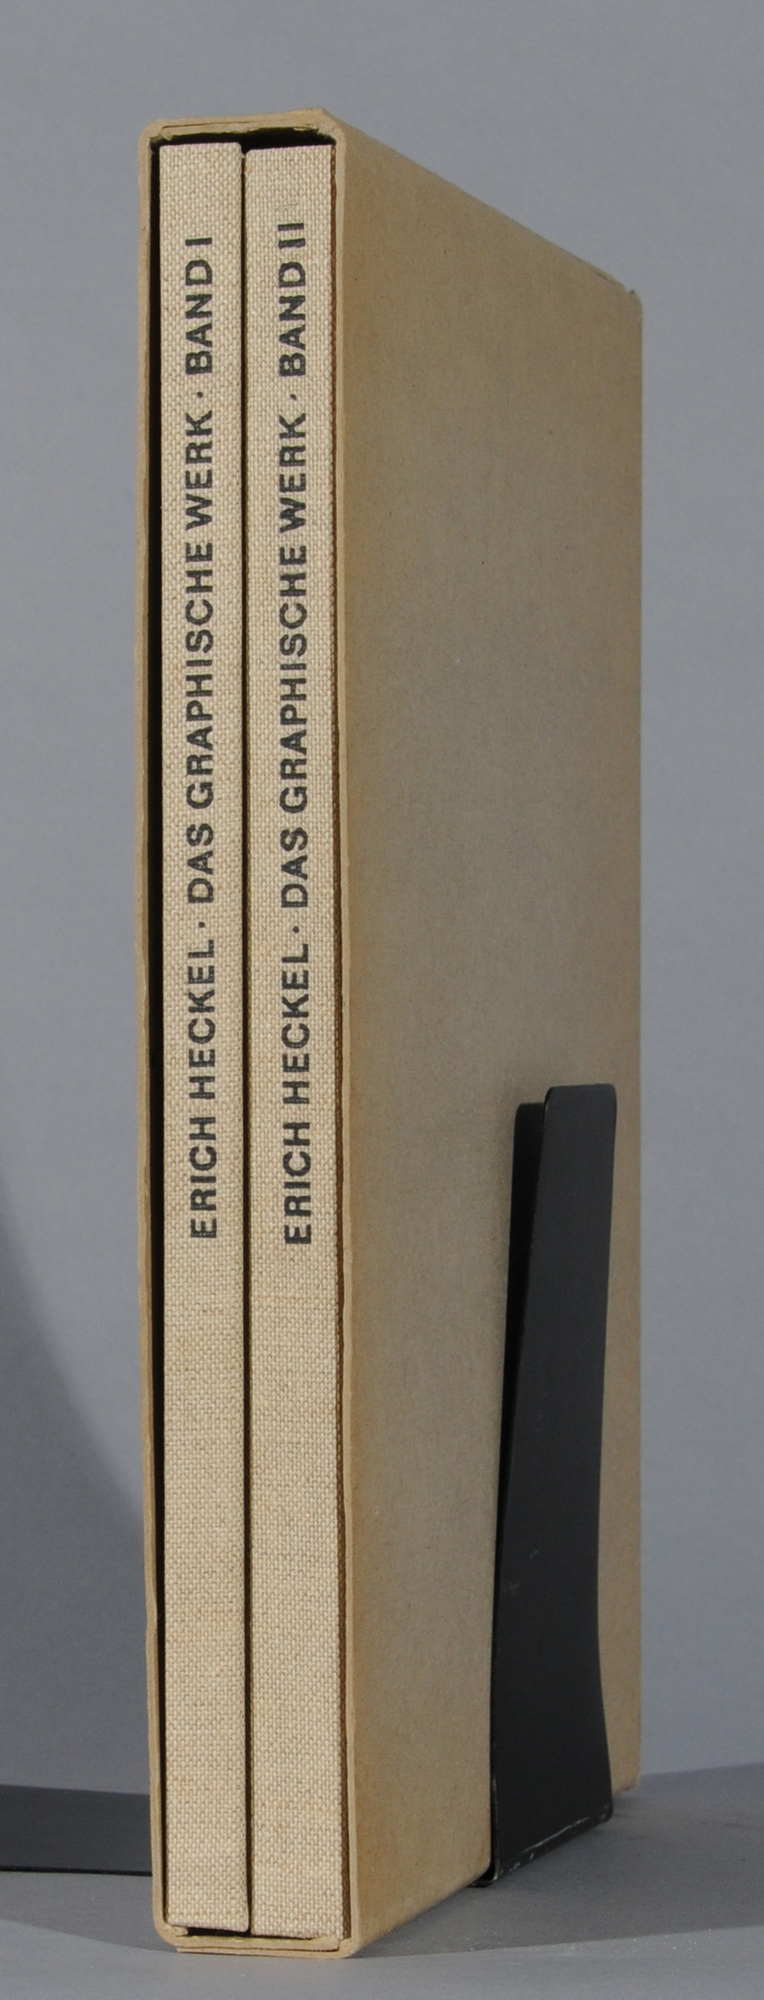 Heckel Erich, Catalogue Raisonné. Annemarie and Wolf-Dieter Dube. Erich Heckel, Das grafische Werk, Vol. I and II